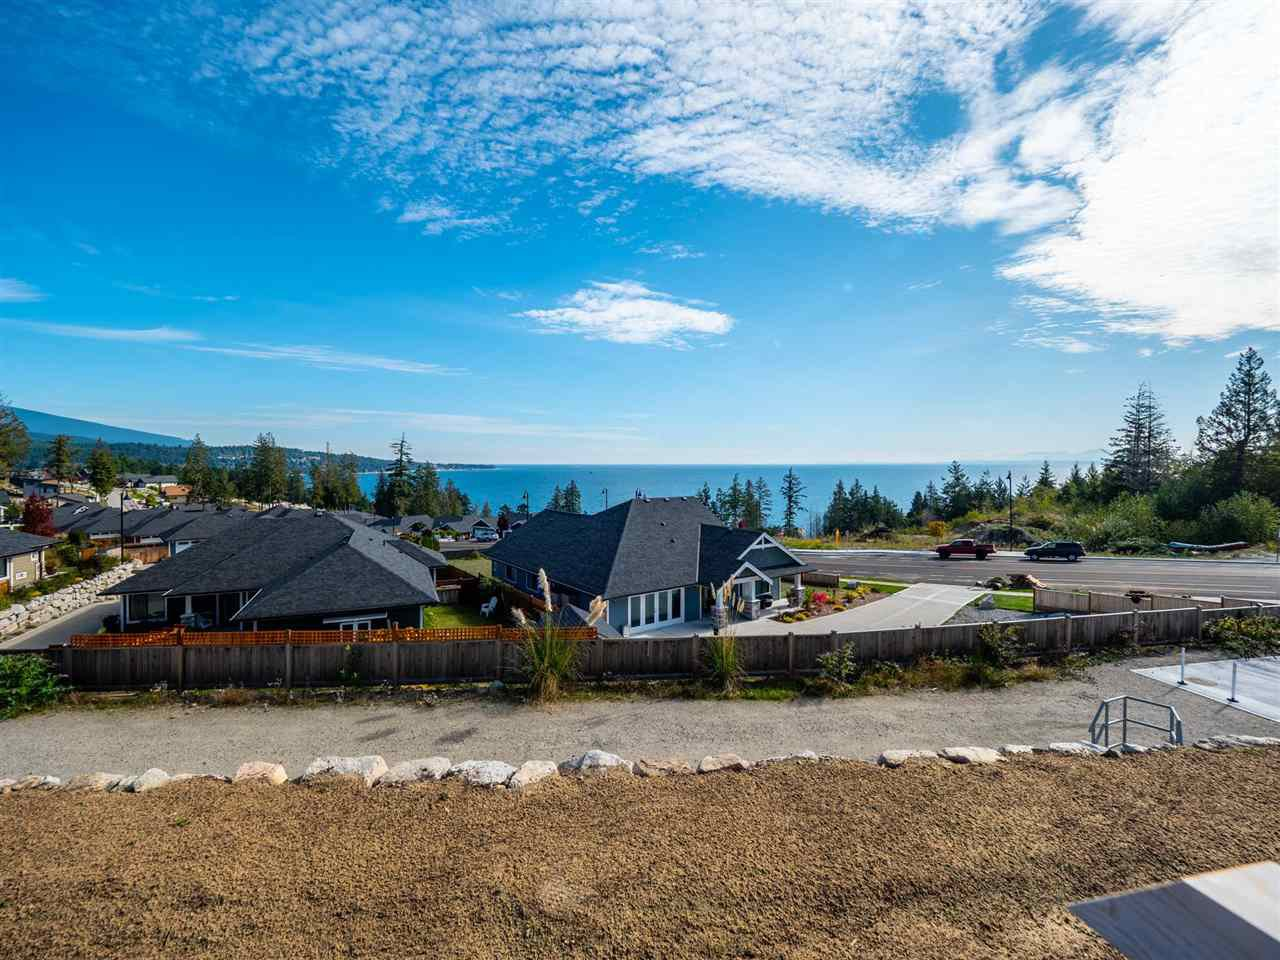 """Photo 2: Photos: 5634 KINGBIRD Crescent in Sechelt: Sechelt District House for sale in """"SilverStone Heights Phase2"""" (Sunshine Coast)  : MLS®# R2466073"""